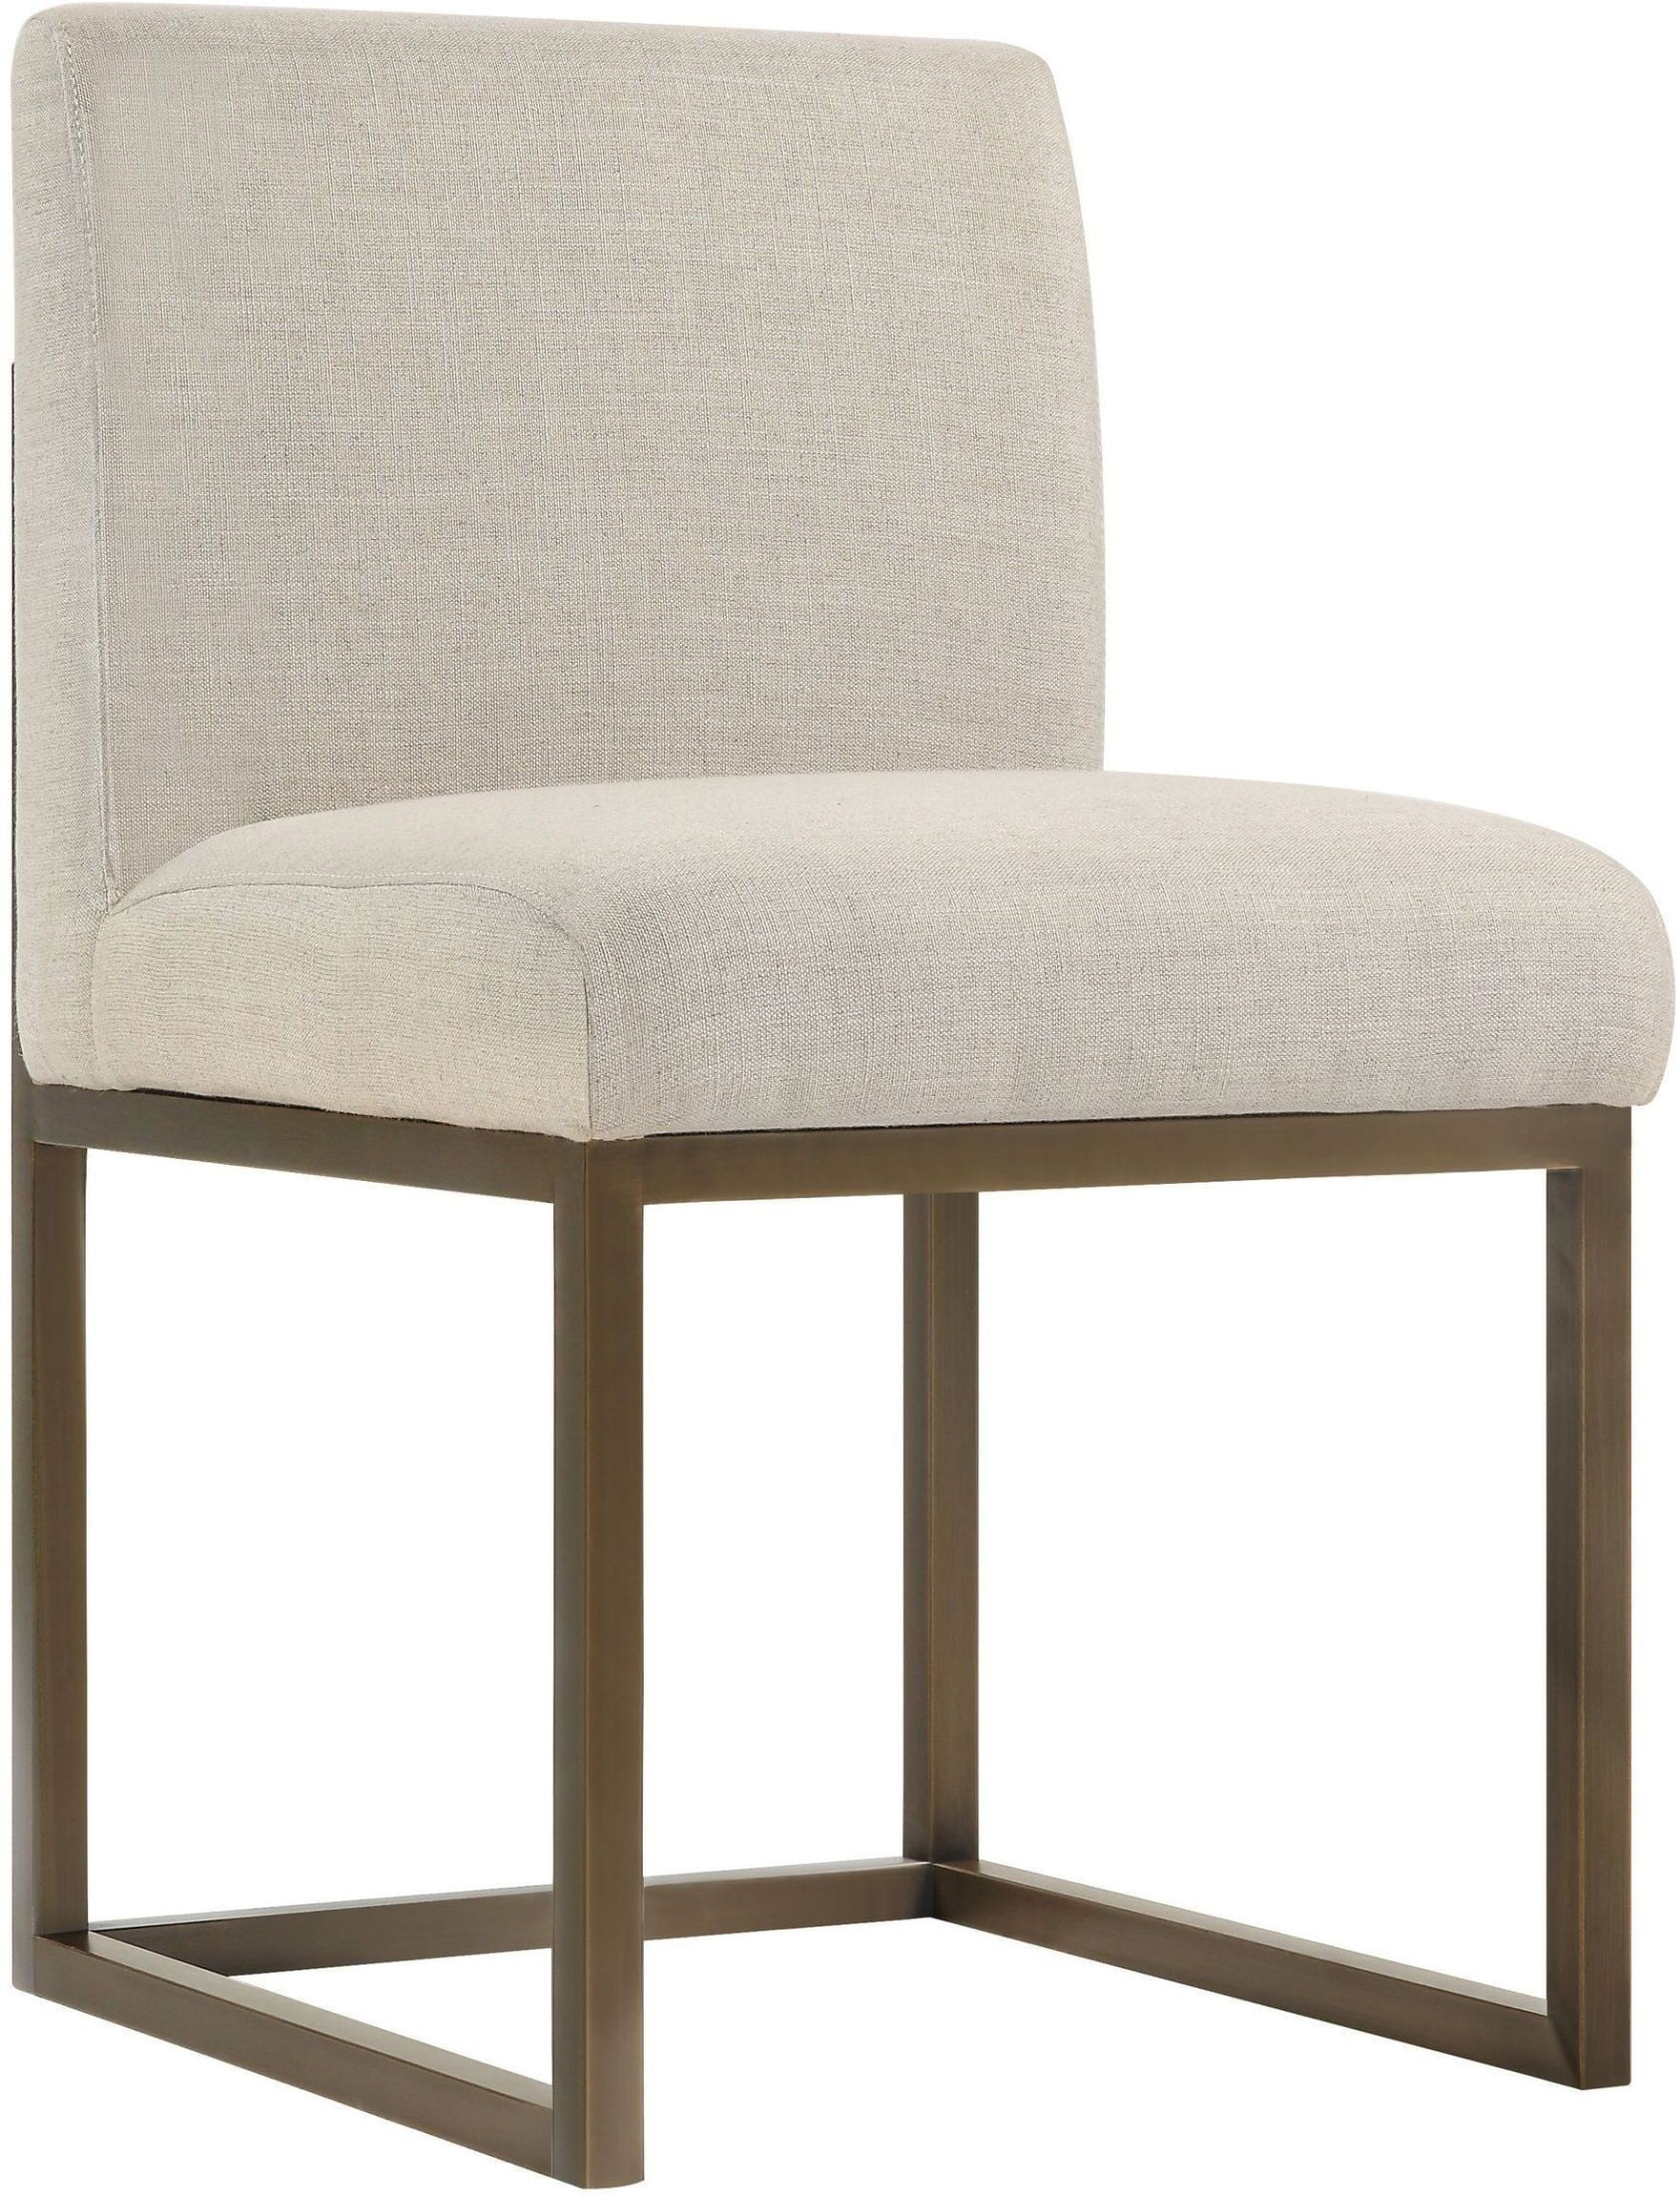 Haute Brass Beige Linen Chair from TOV Furniture D49